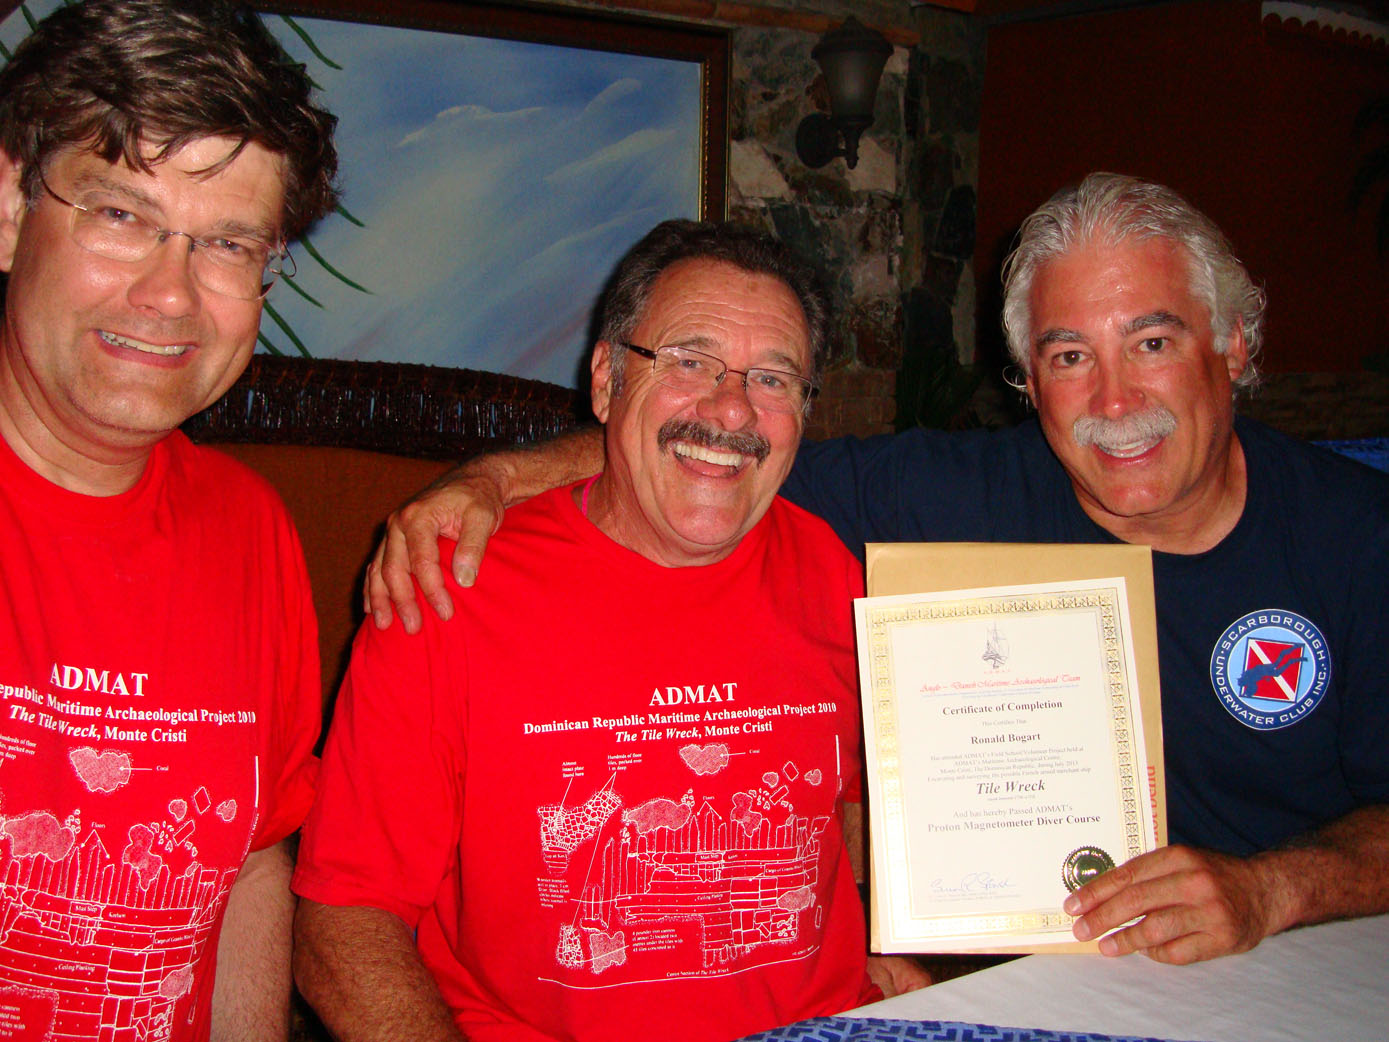 John Downing awarding student Ron his Proton Magnetometer Diver Course certificate, as Ast. Project Leader in 2013, for Ron's work on   The Tile Wreck   where numerous fully armed iron grenades were found